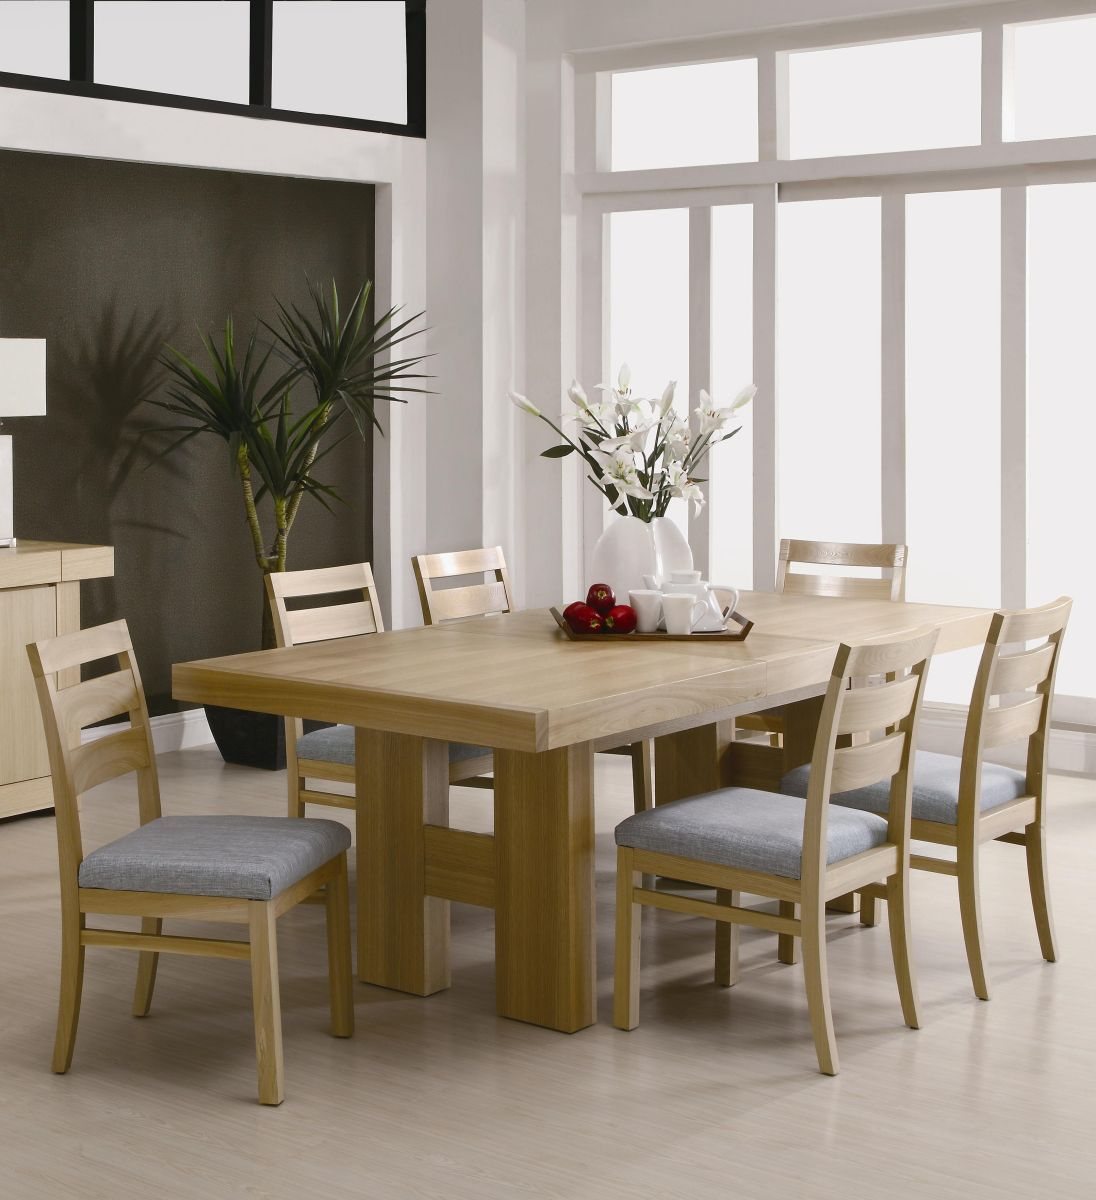 Coaster Dining Room Set Price Upon Request Call (631) 742-1351 for Best Price Guarantee  Dinette Sets New York , Dinette Sets Long Island , Dining Room Sets New York , Dining Room Sets Long Island, Dining Room Chairs Long Island The ash solids and hardwood